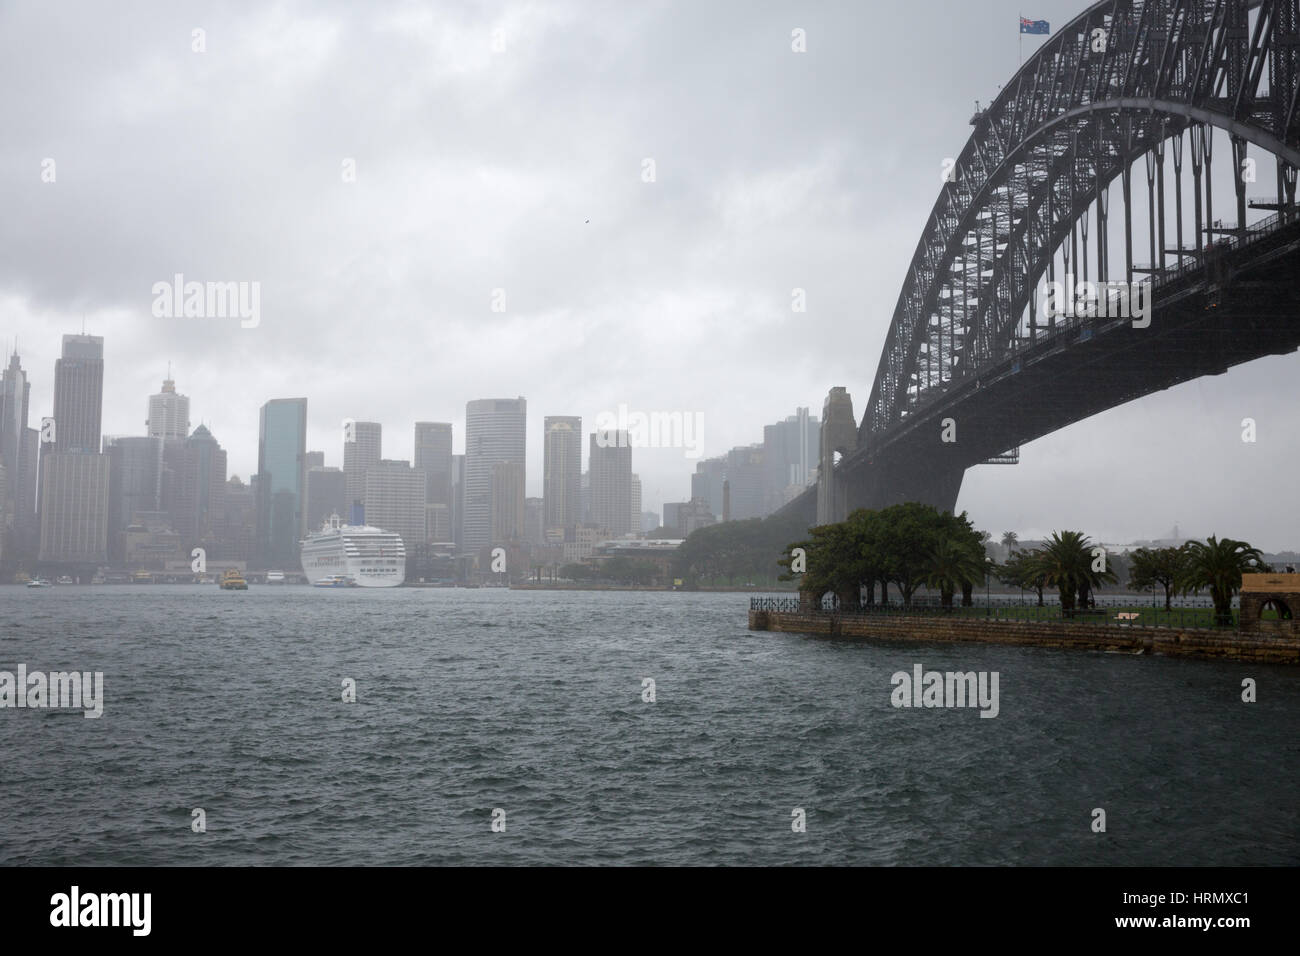 Sydney, Australia. 3rd March 2017. A week of heavy rain and thunderstorms continues over Sydney and parts of New South Wales, flash flooding is forecast across parts of the State this coming weekend. Credit: martin berry/Alamy Live News Stock Photo